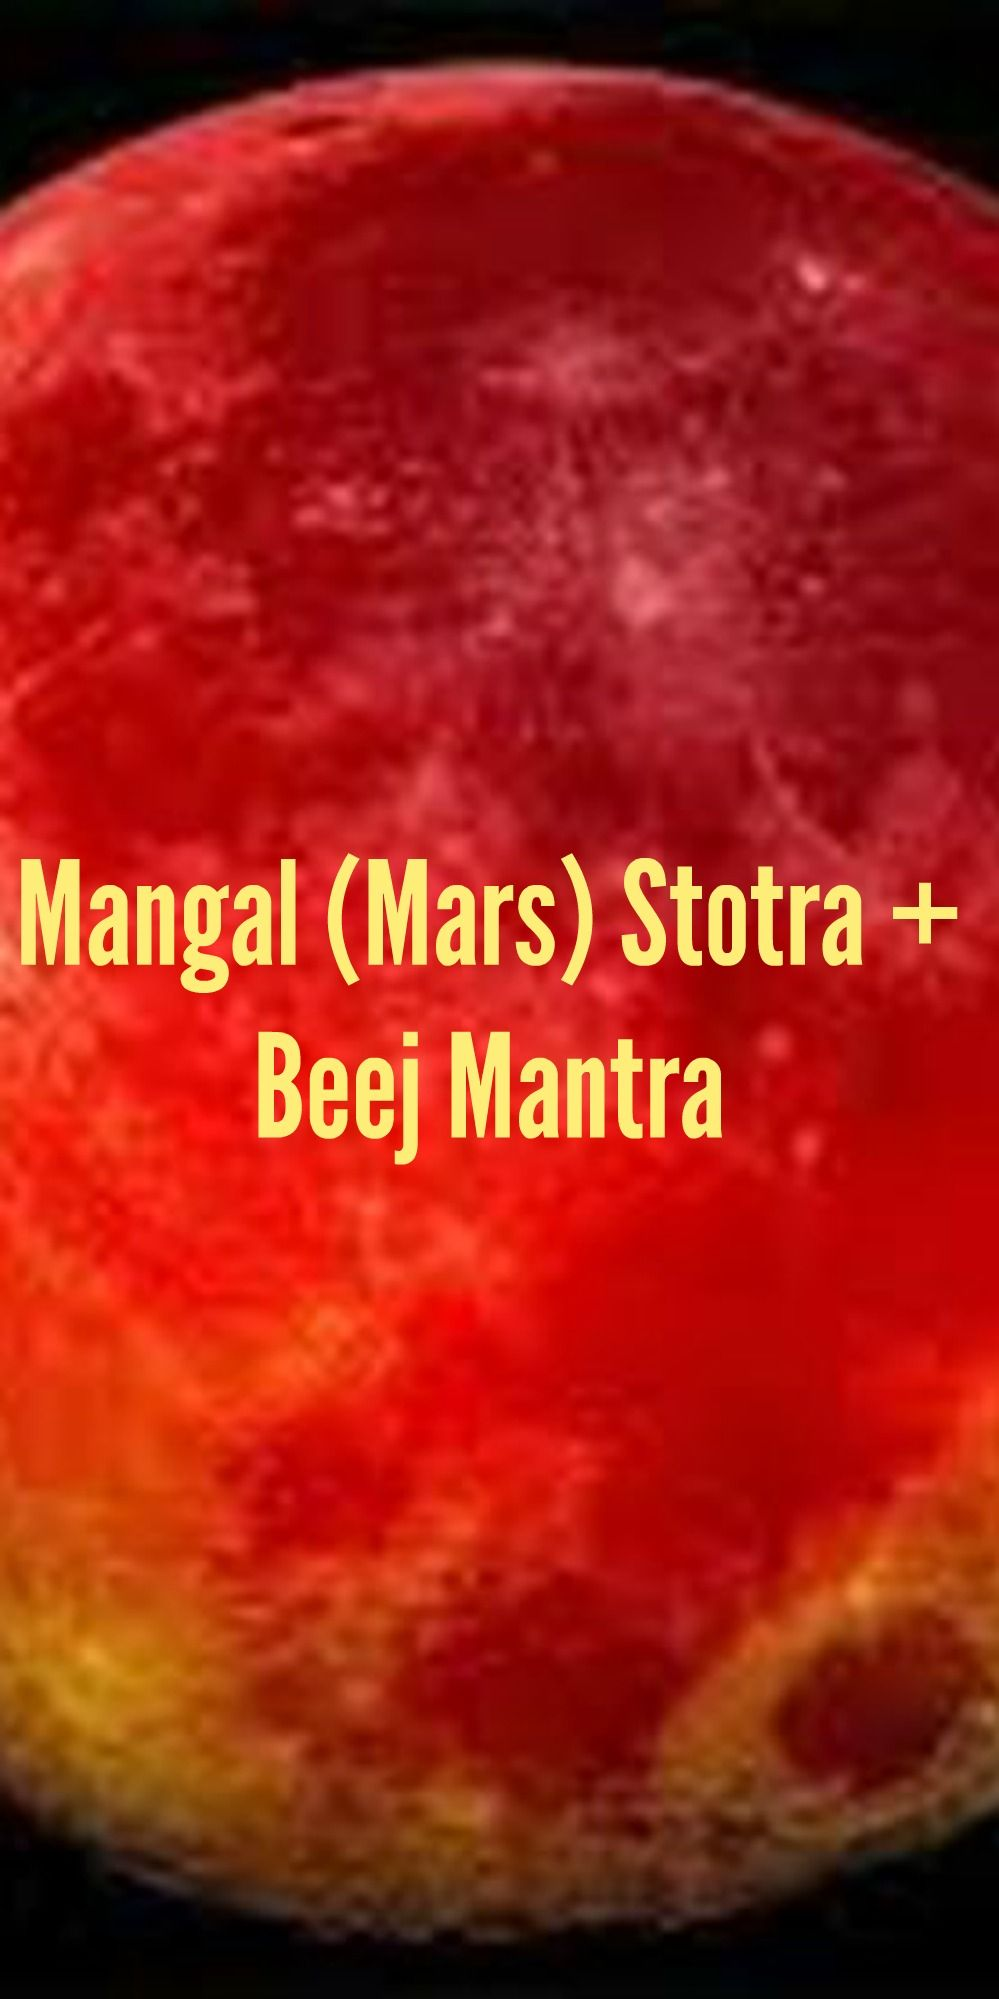 Mangal Mars Stotra Beej Mantra Lyrics Meaning And Benefits